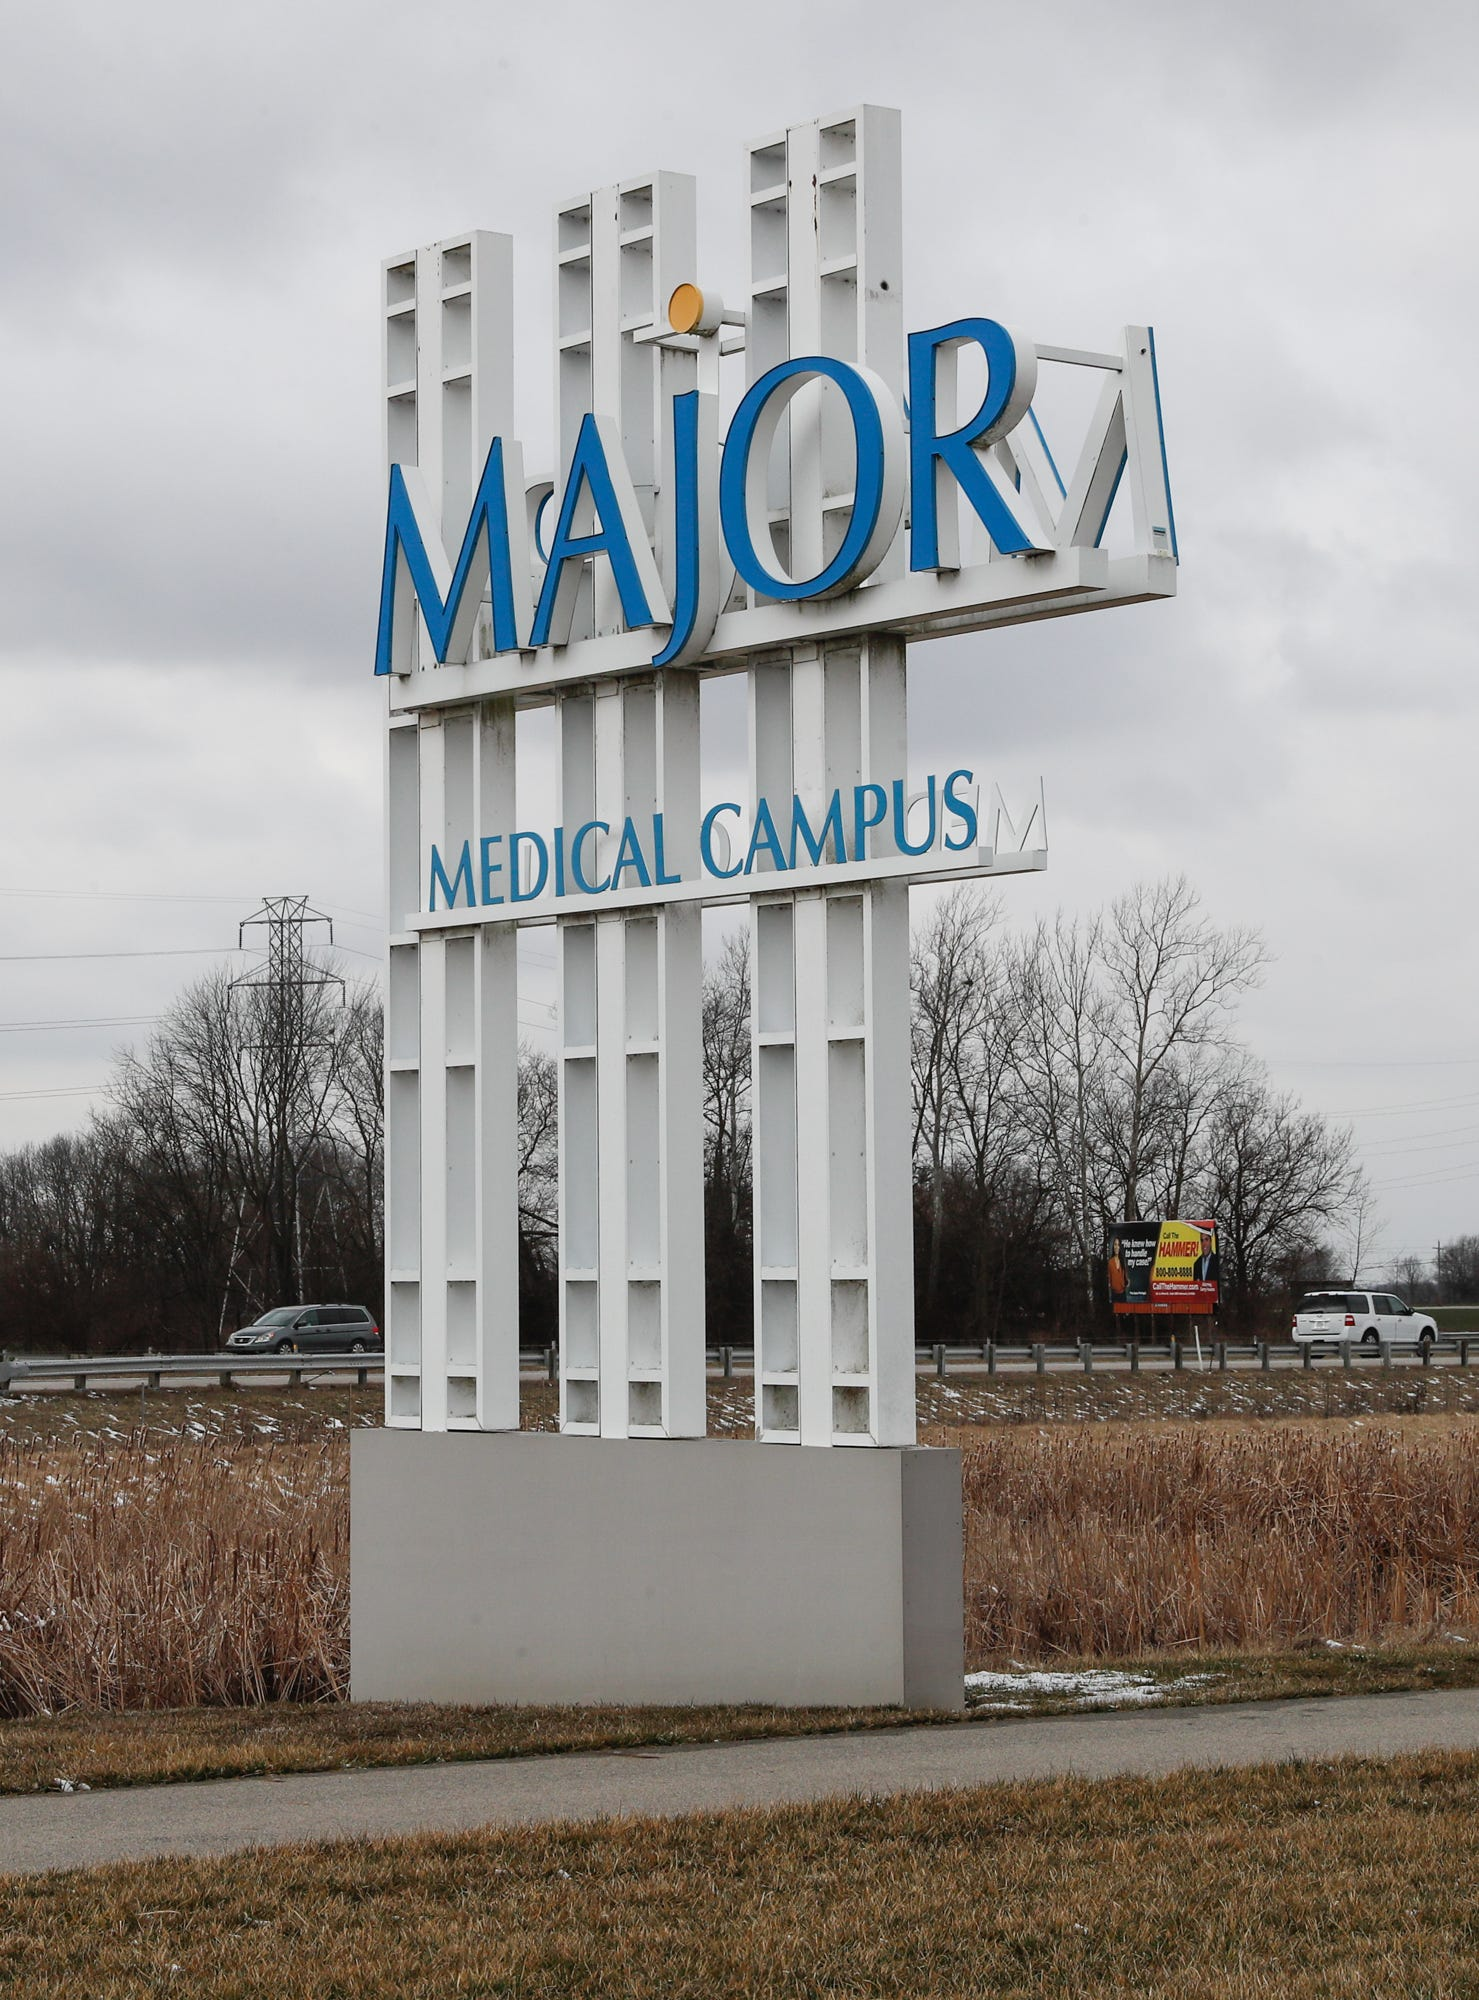 Major Hospital in Shelby County is one of the state's largest nursing home owners, with 43 long-term care facilities scattered across the state. Over the last two decades, county hospitals have snatched up 93% of Indiana's nursing homes to qualify for millions of dollars in extra Medicaid payments each year.